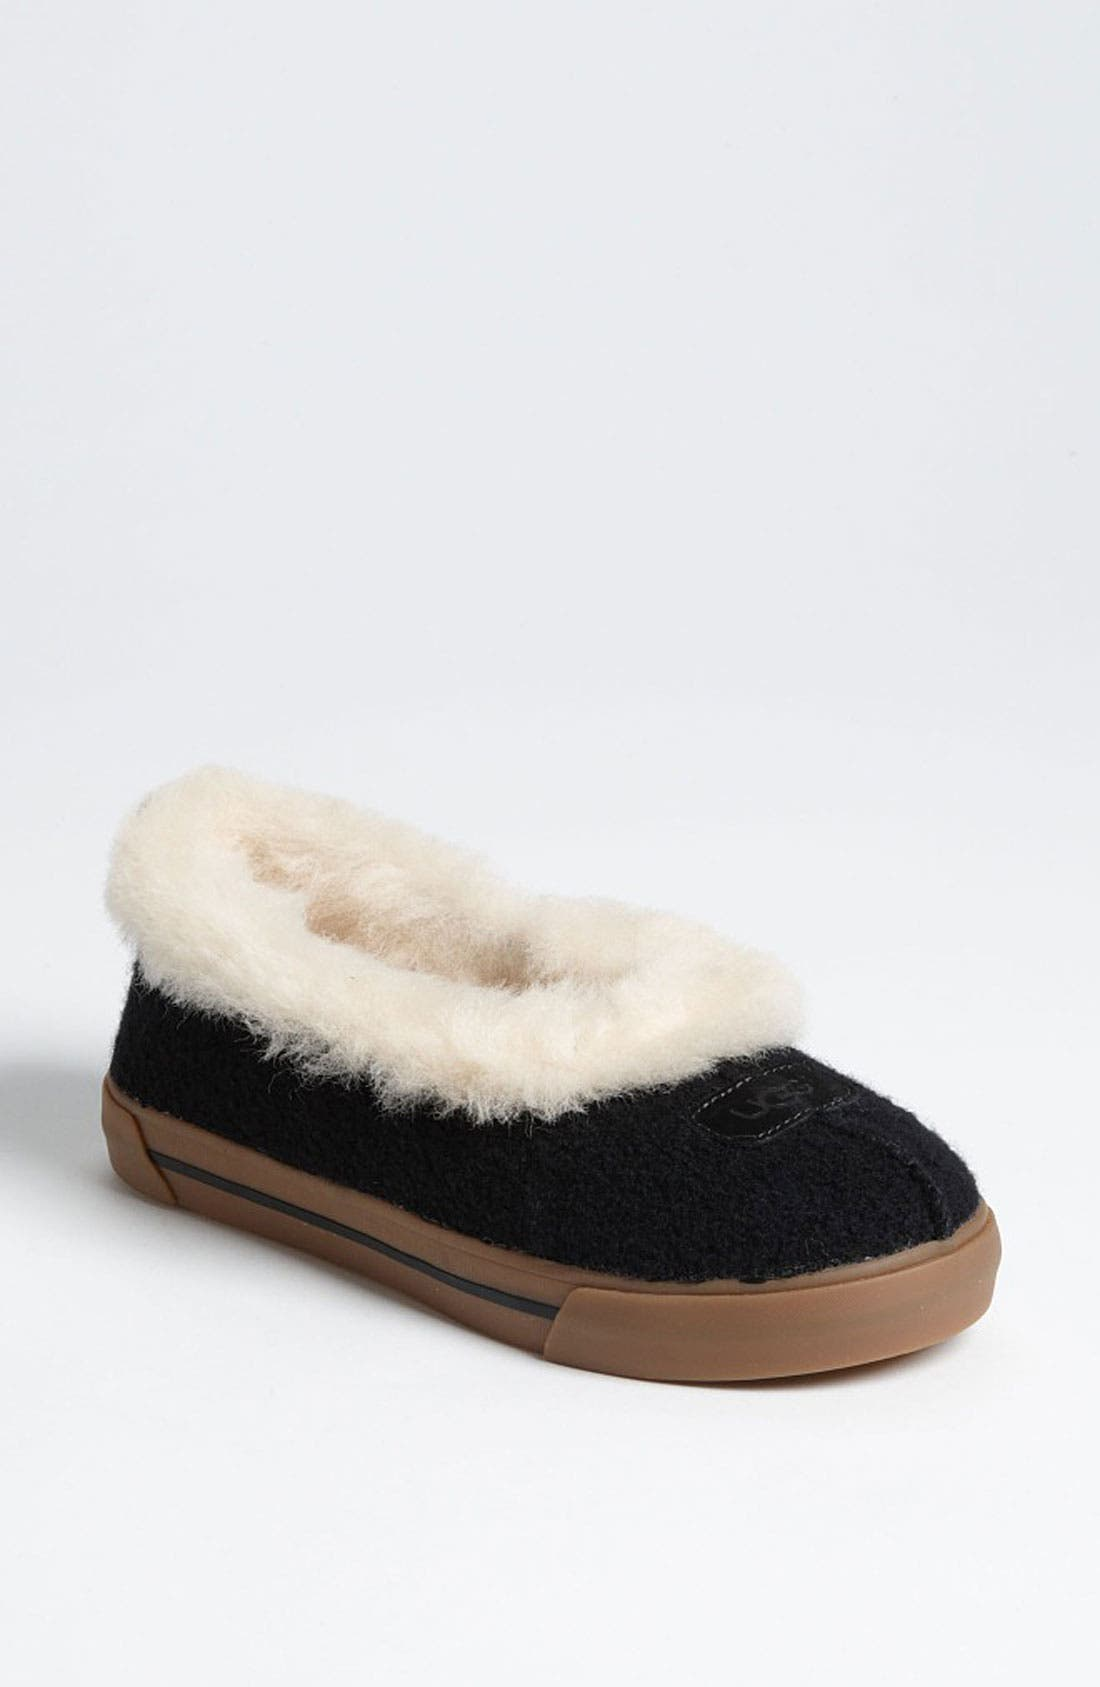 Main Image - UGG® Australia 'Rylan Wool' Slipper (Women)